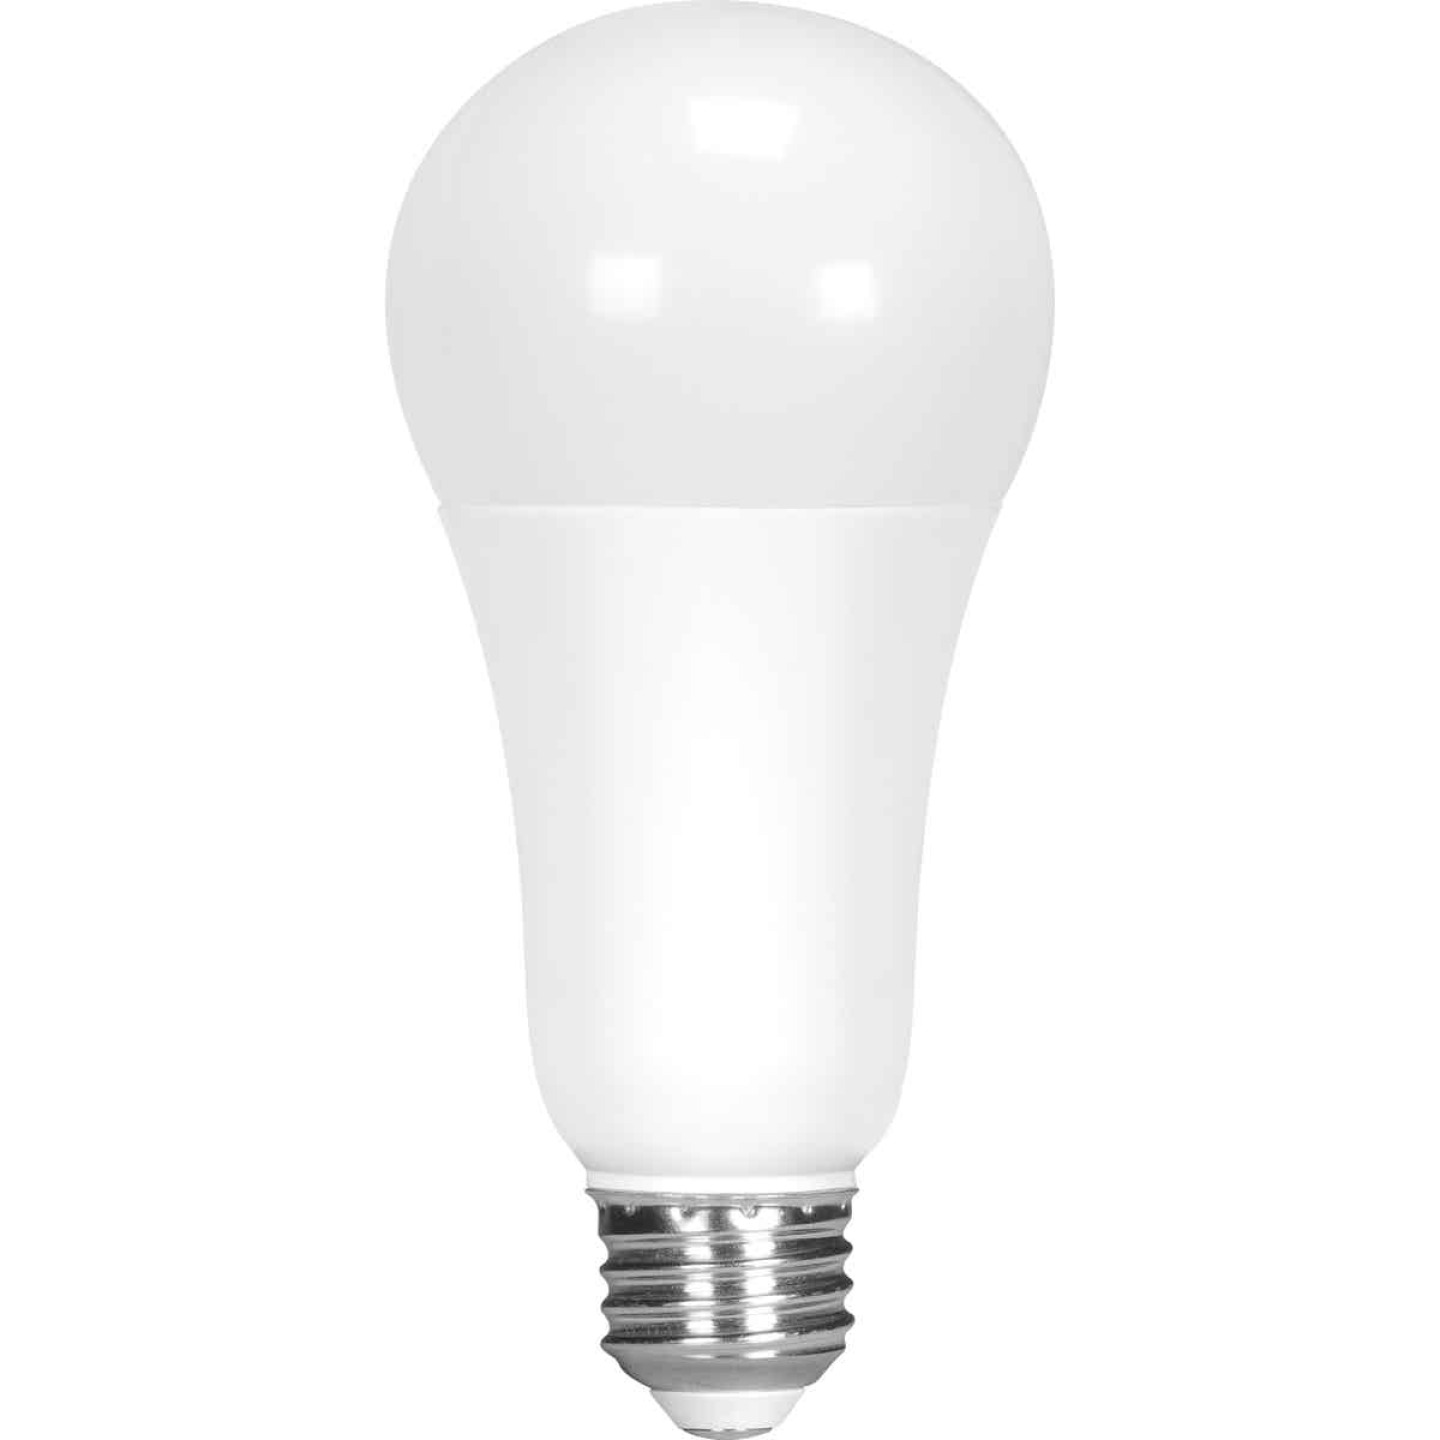 Satco 100W Equivalent Warm White A21 Medium Dimmable LED Light Bulb Image 1